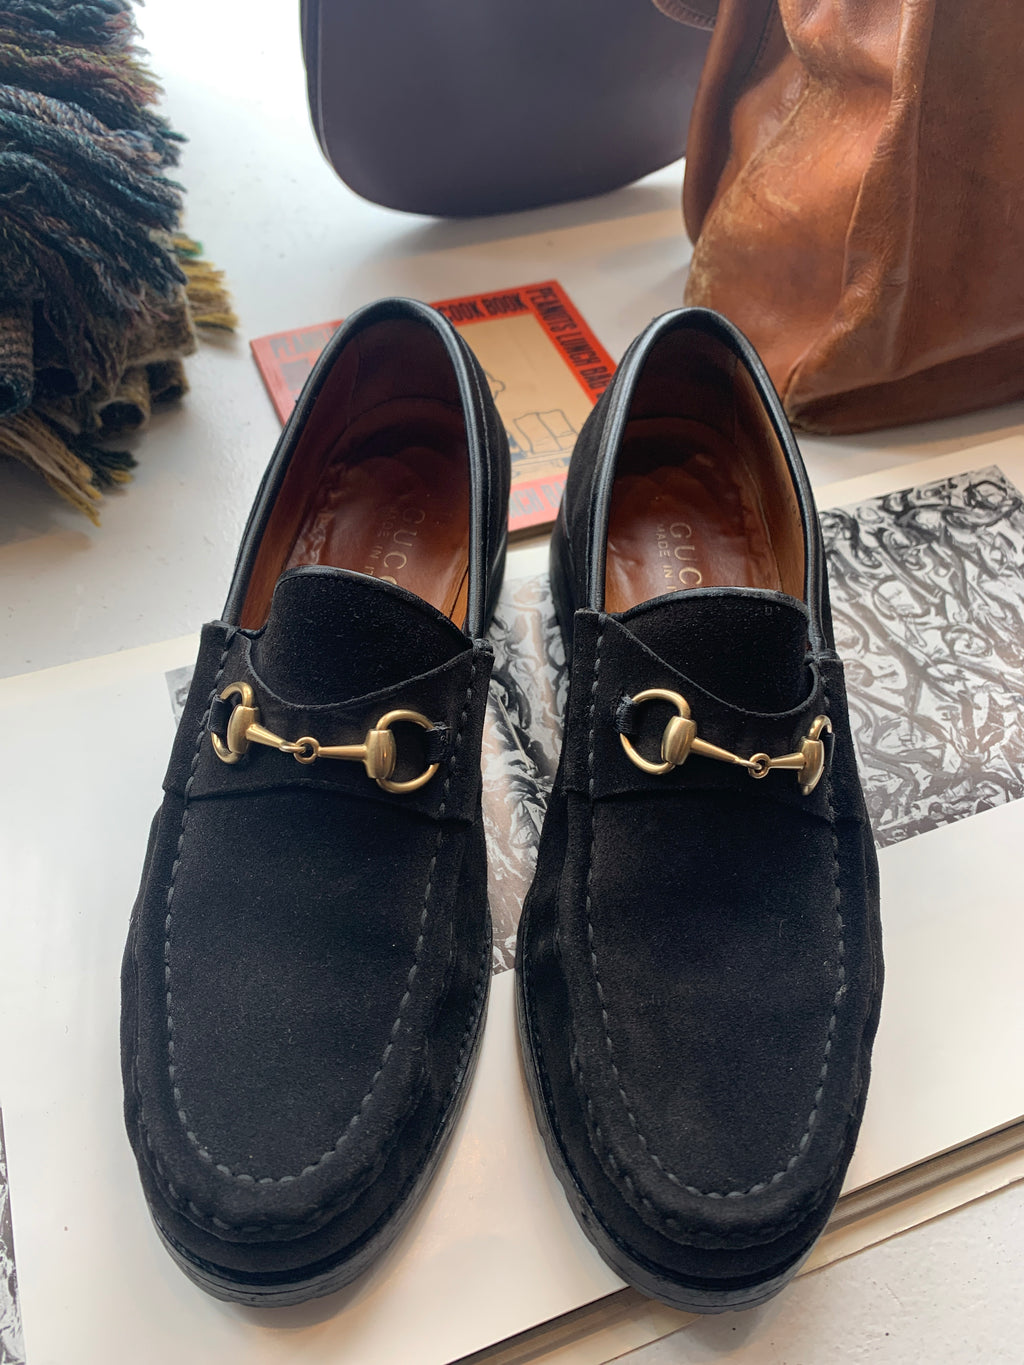 Size 7 1/2 Black Suede Gucci Loafers